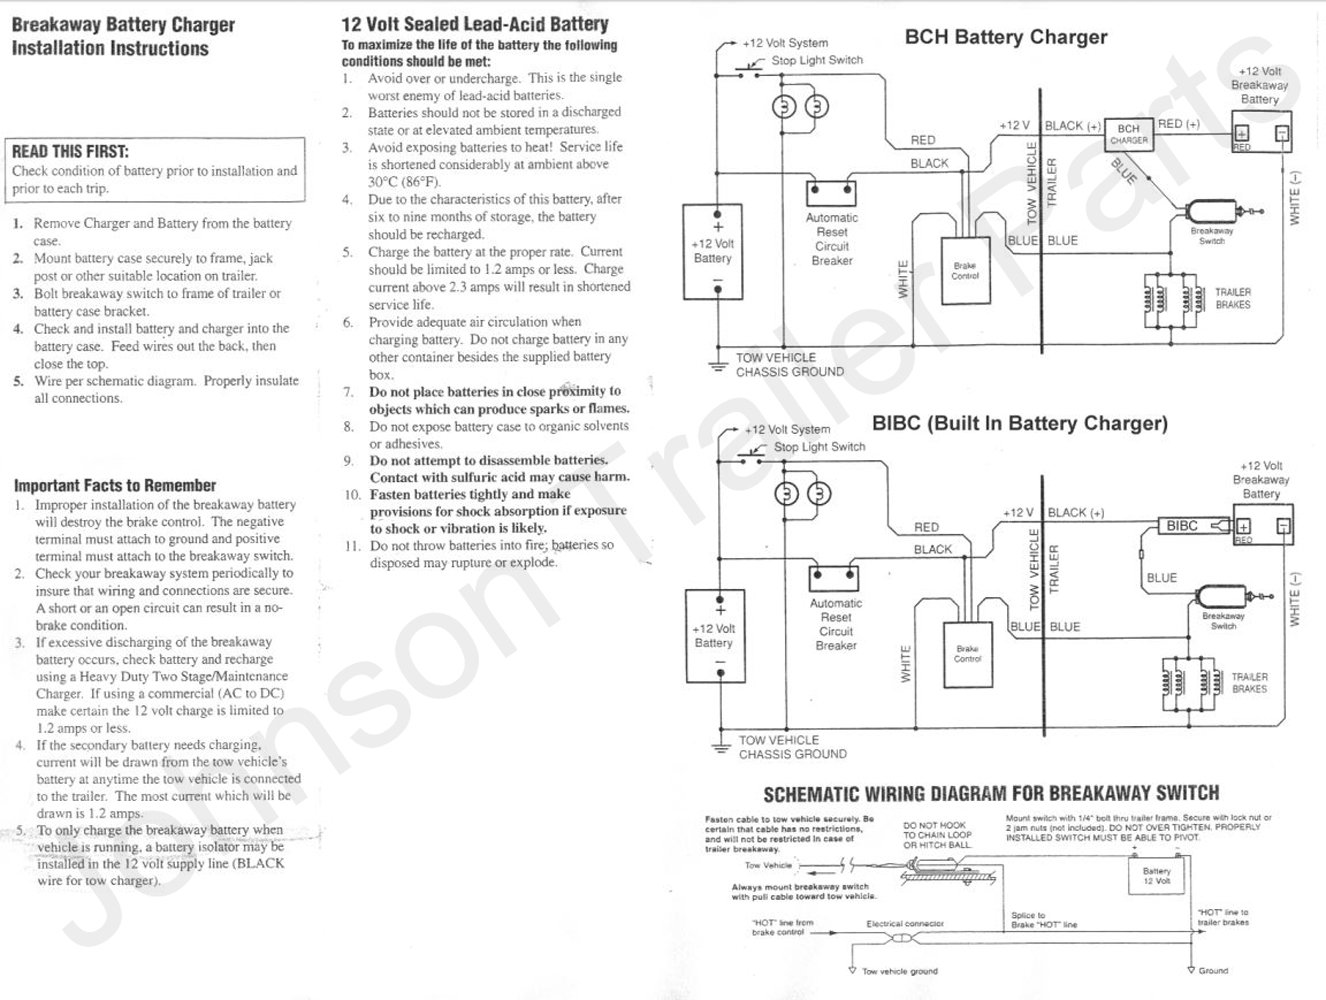 motorhome wiring diagram motorhome image wiring rv ke wiring rv wiring diagrams car on motorhome wiring diagram